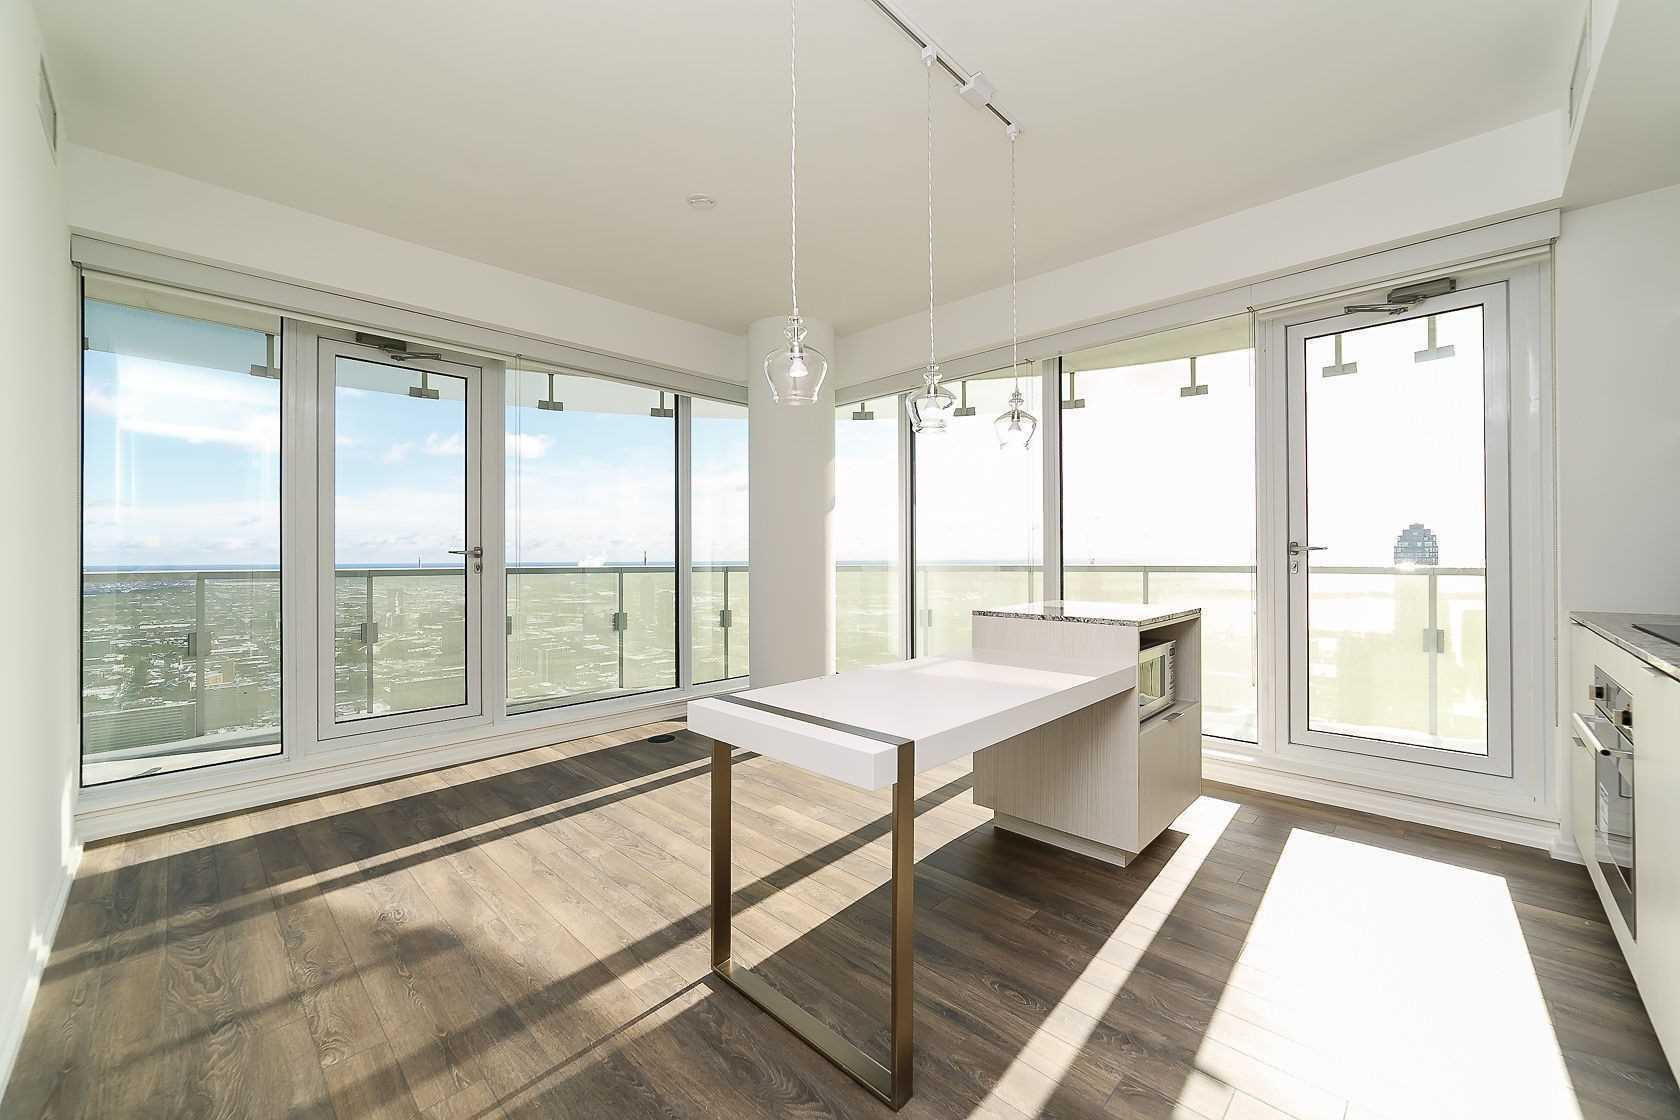 For Rent: 5305 - 197 Yonge Street, Toronto, ON | 1 Bed, 1 Bath Condo for $2250.00. See 21 photos!